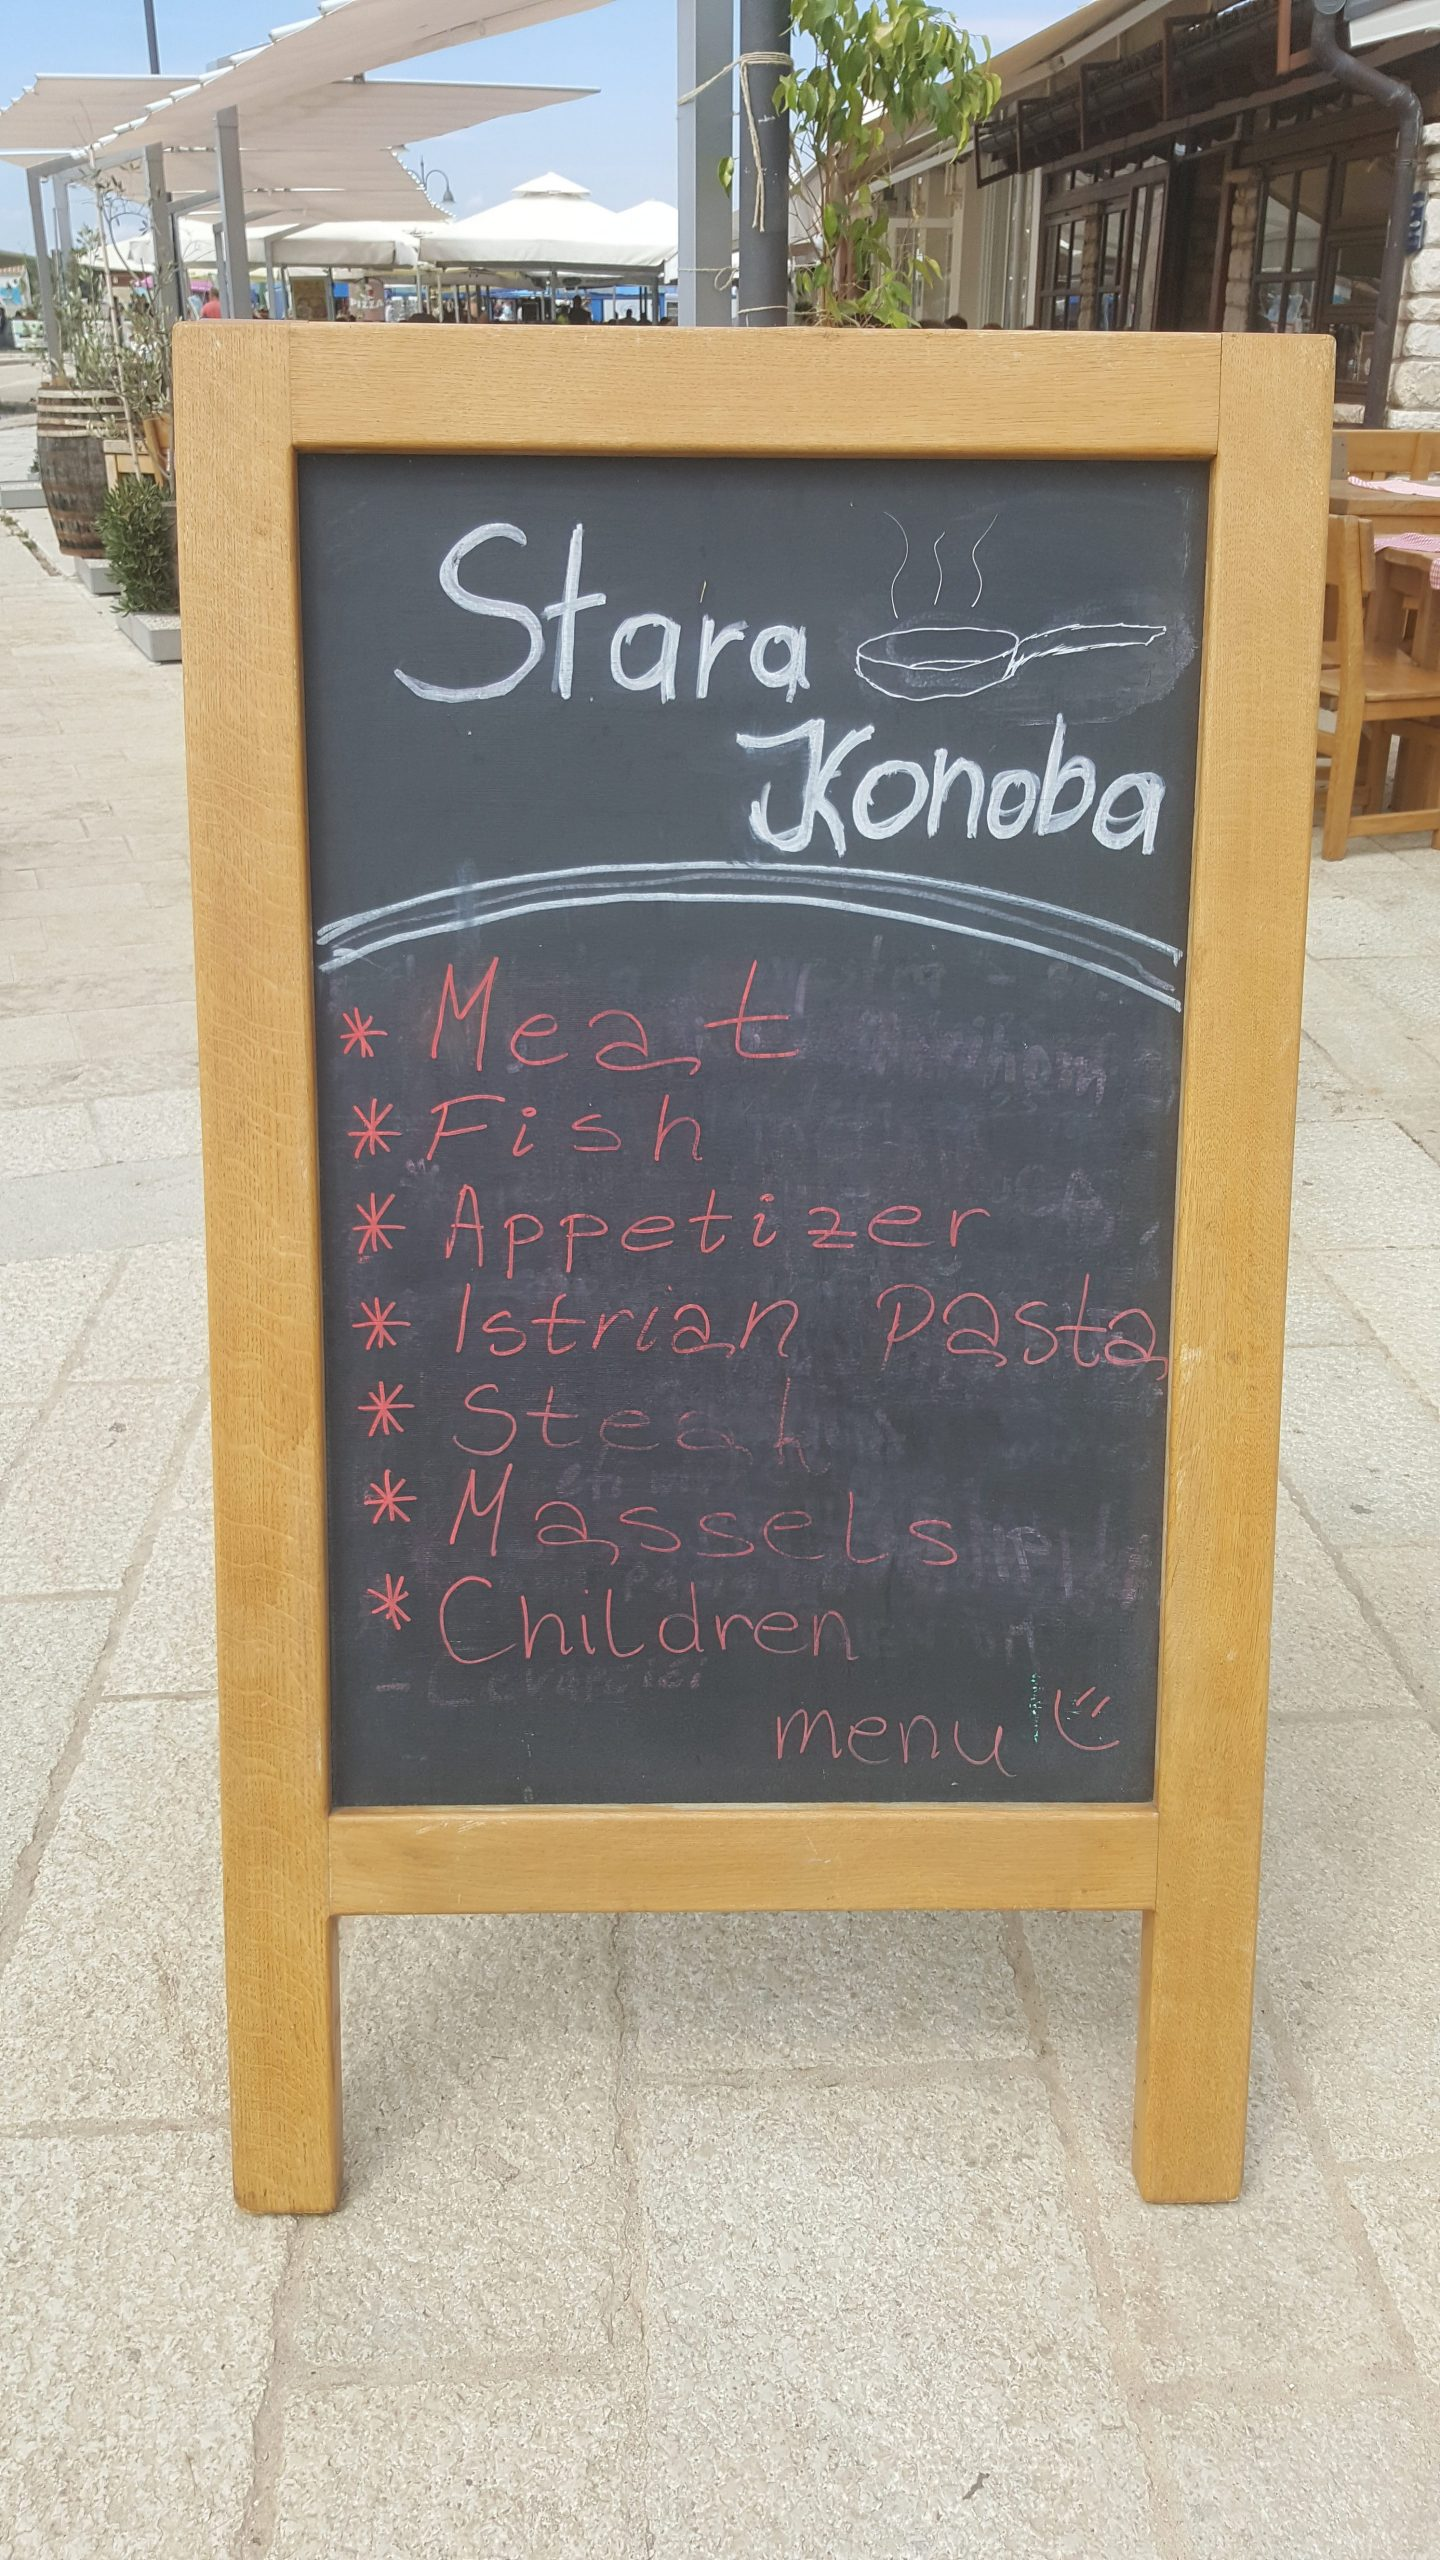 Stara Konoba, a great place for seafood, despite having children on the menu......